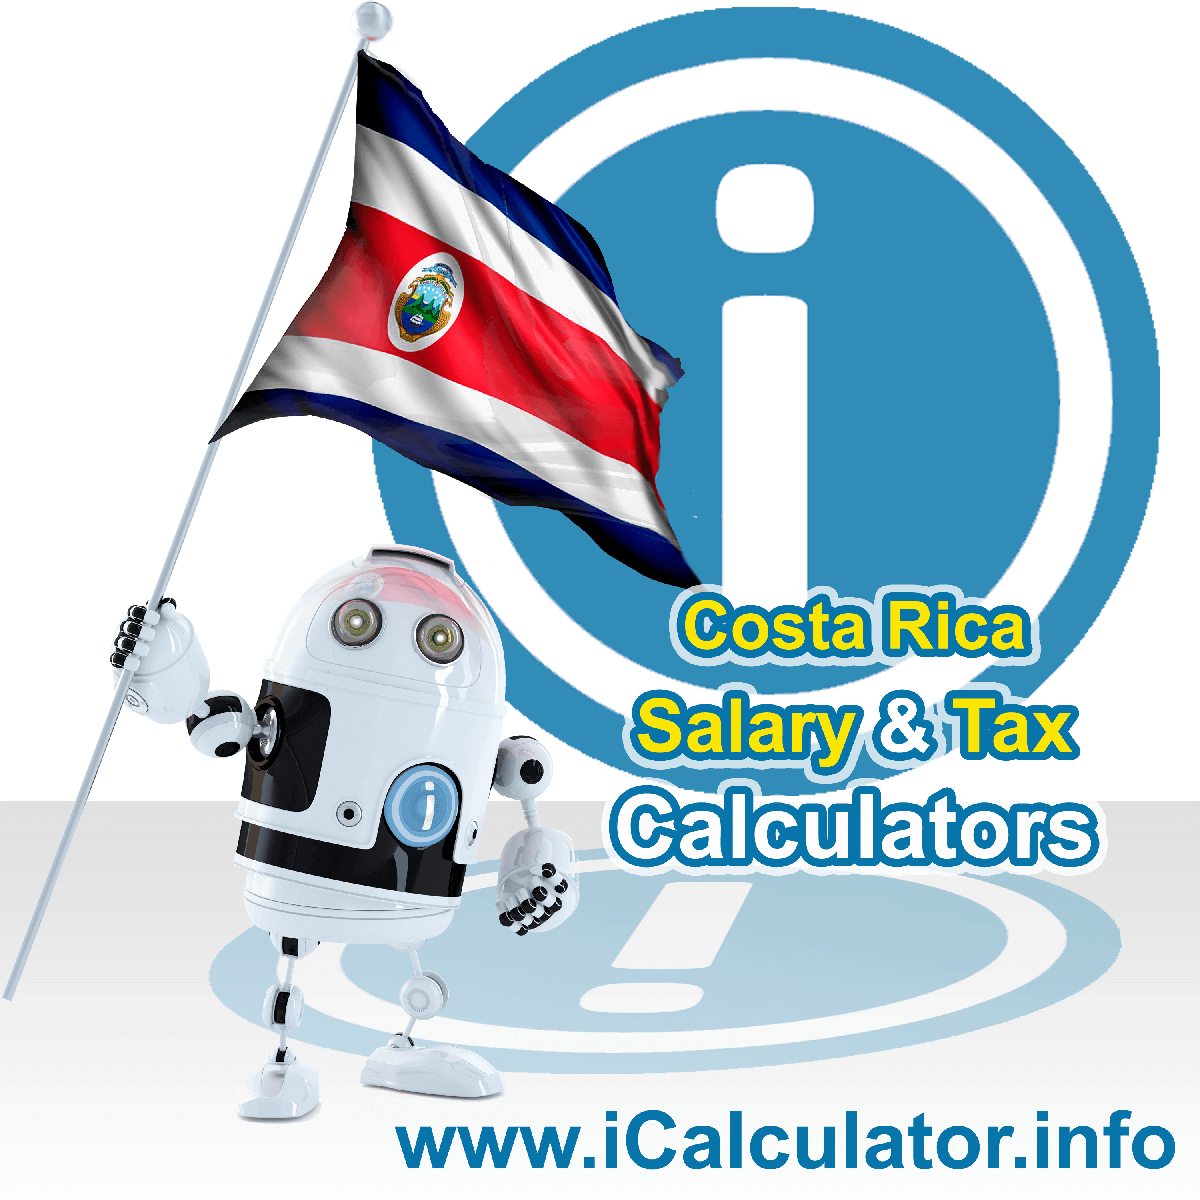 Costa Rica Wage Calculator. This image shows the Costa Rica flag and information relating to the tax formula for the Costa Rica Tax Calculator